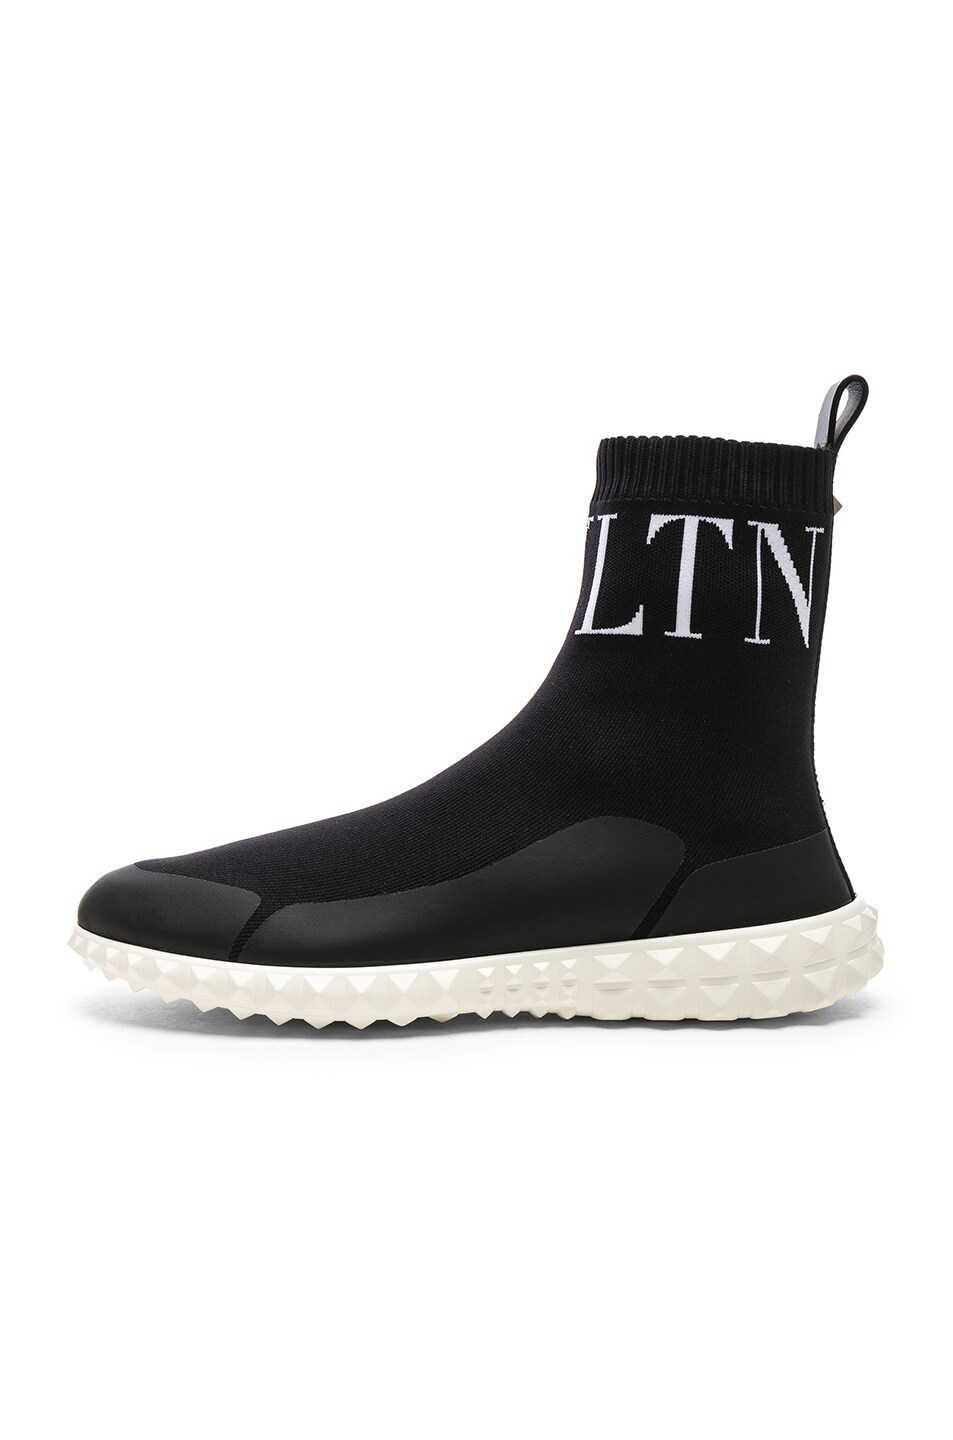 Image 8 of Valentino VLTN High Top Sock Sneakers in Black & White